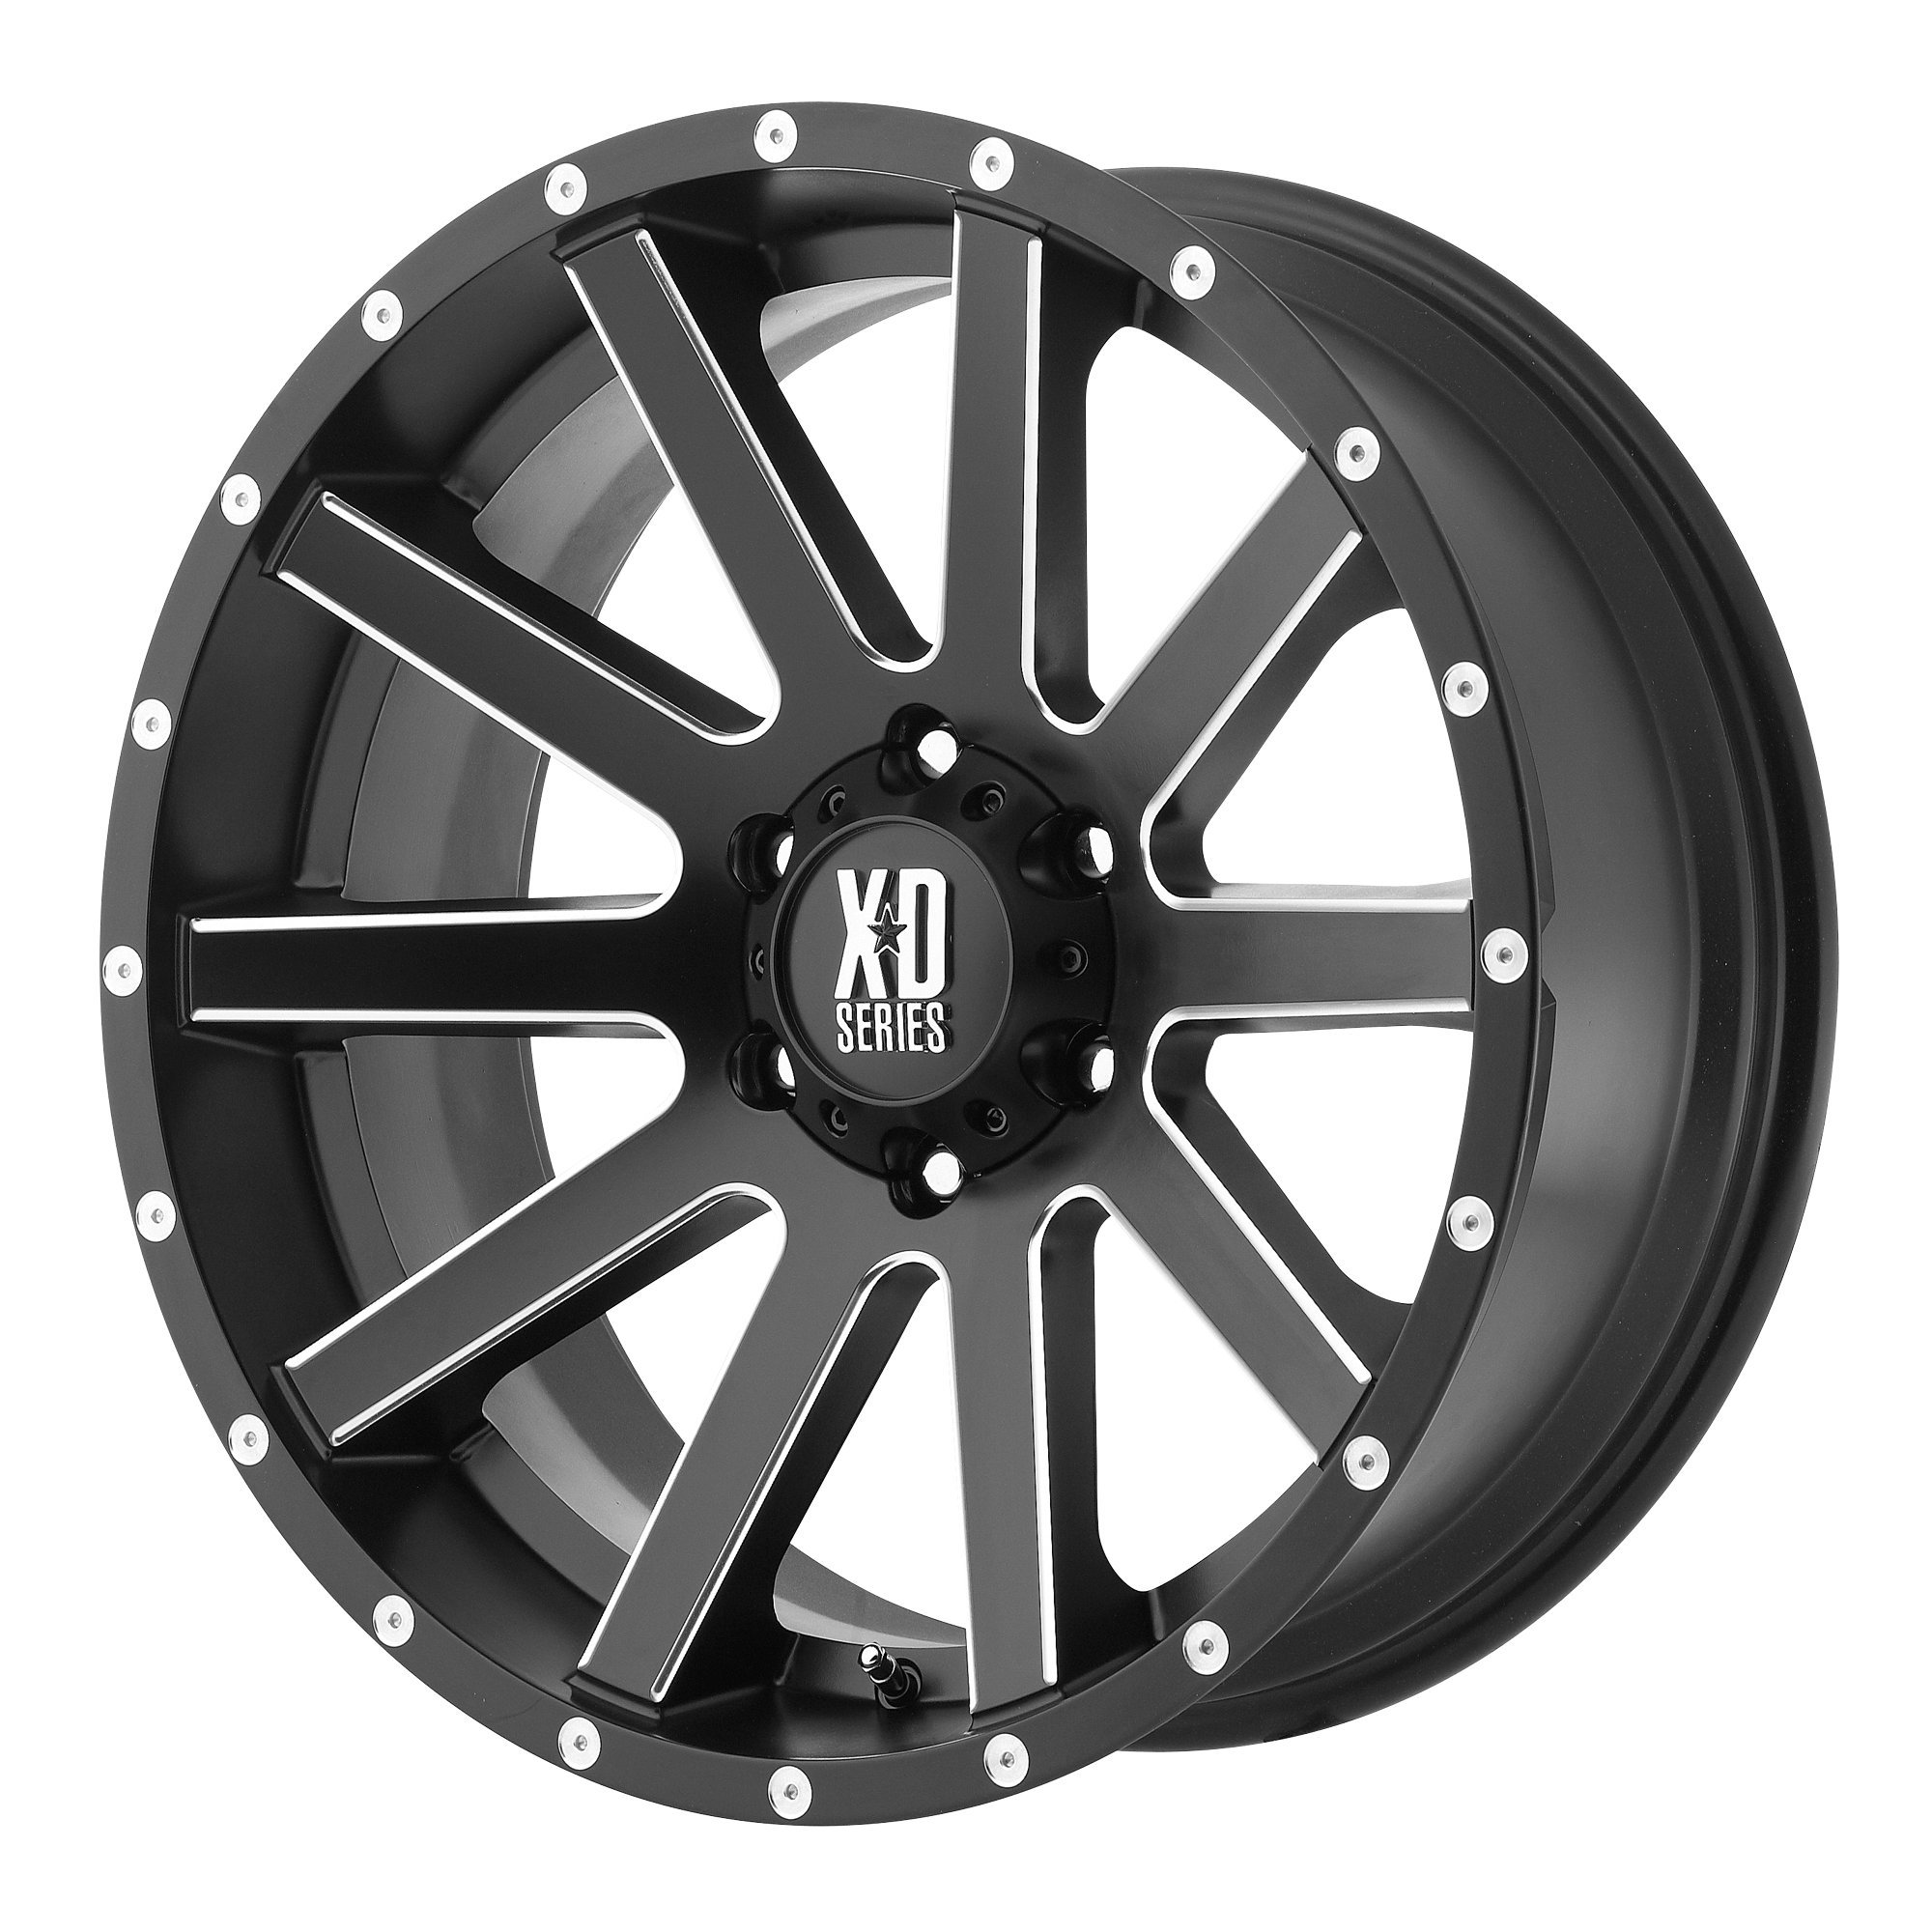 XD Series by KMC Wheels XD818 Heist Satin Black Wheel With Milled Spokes and Flange (20x9''/6x139.7mm, +18mm offset)